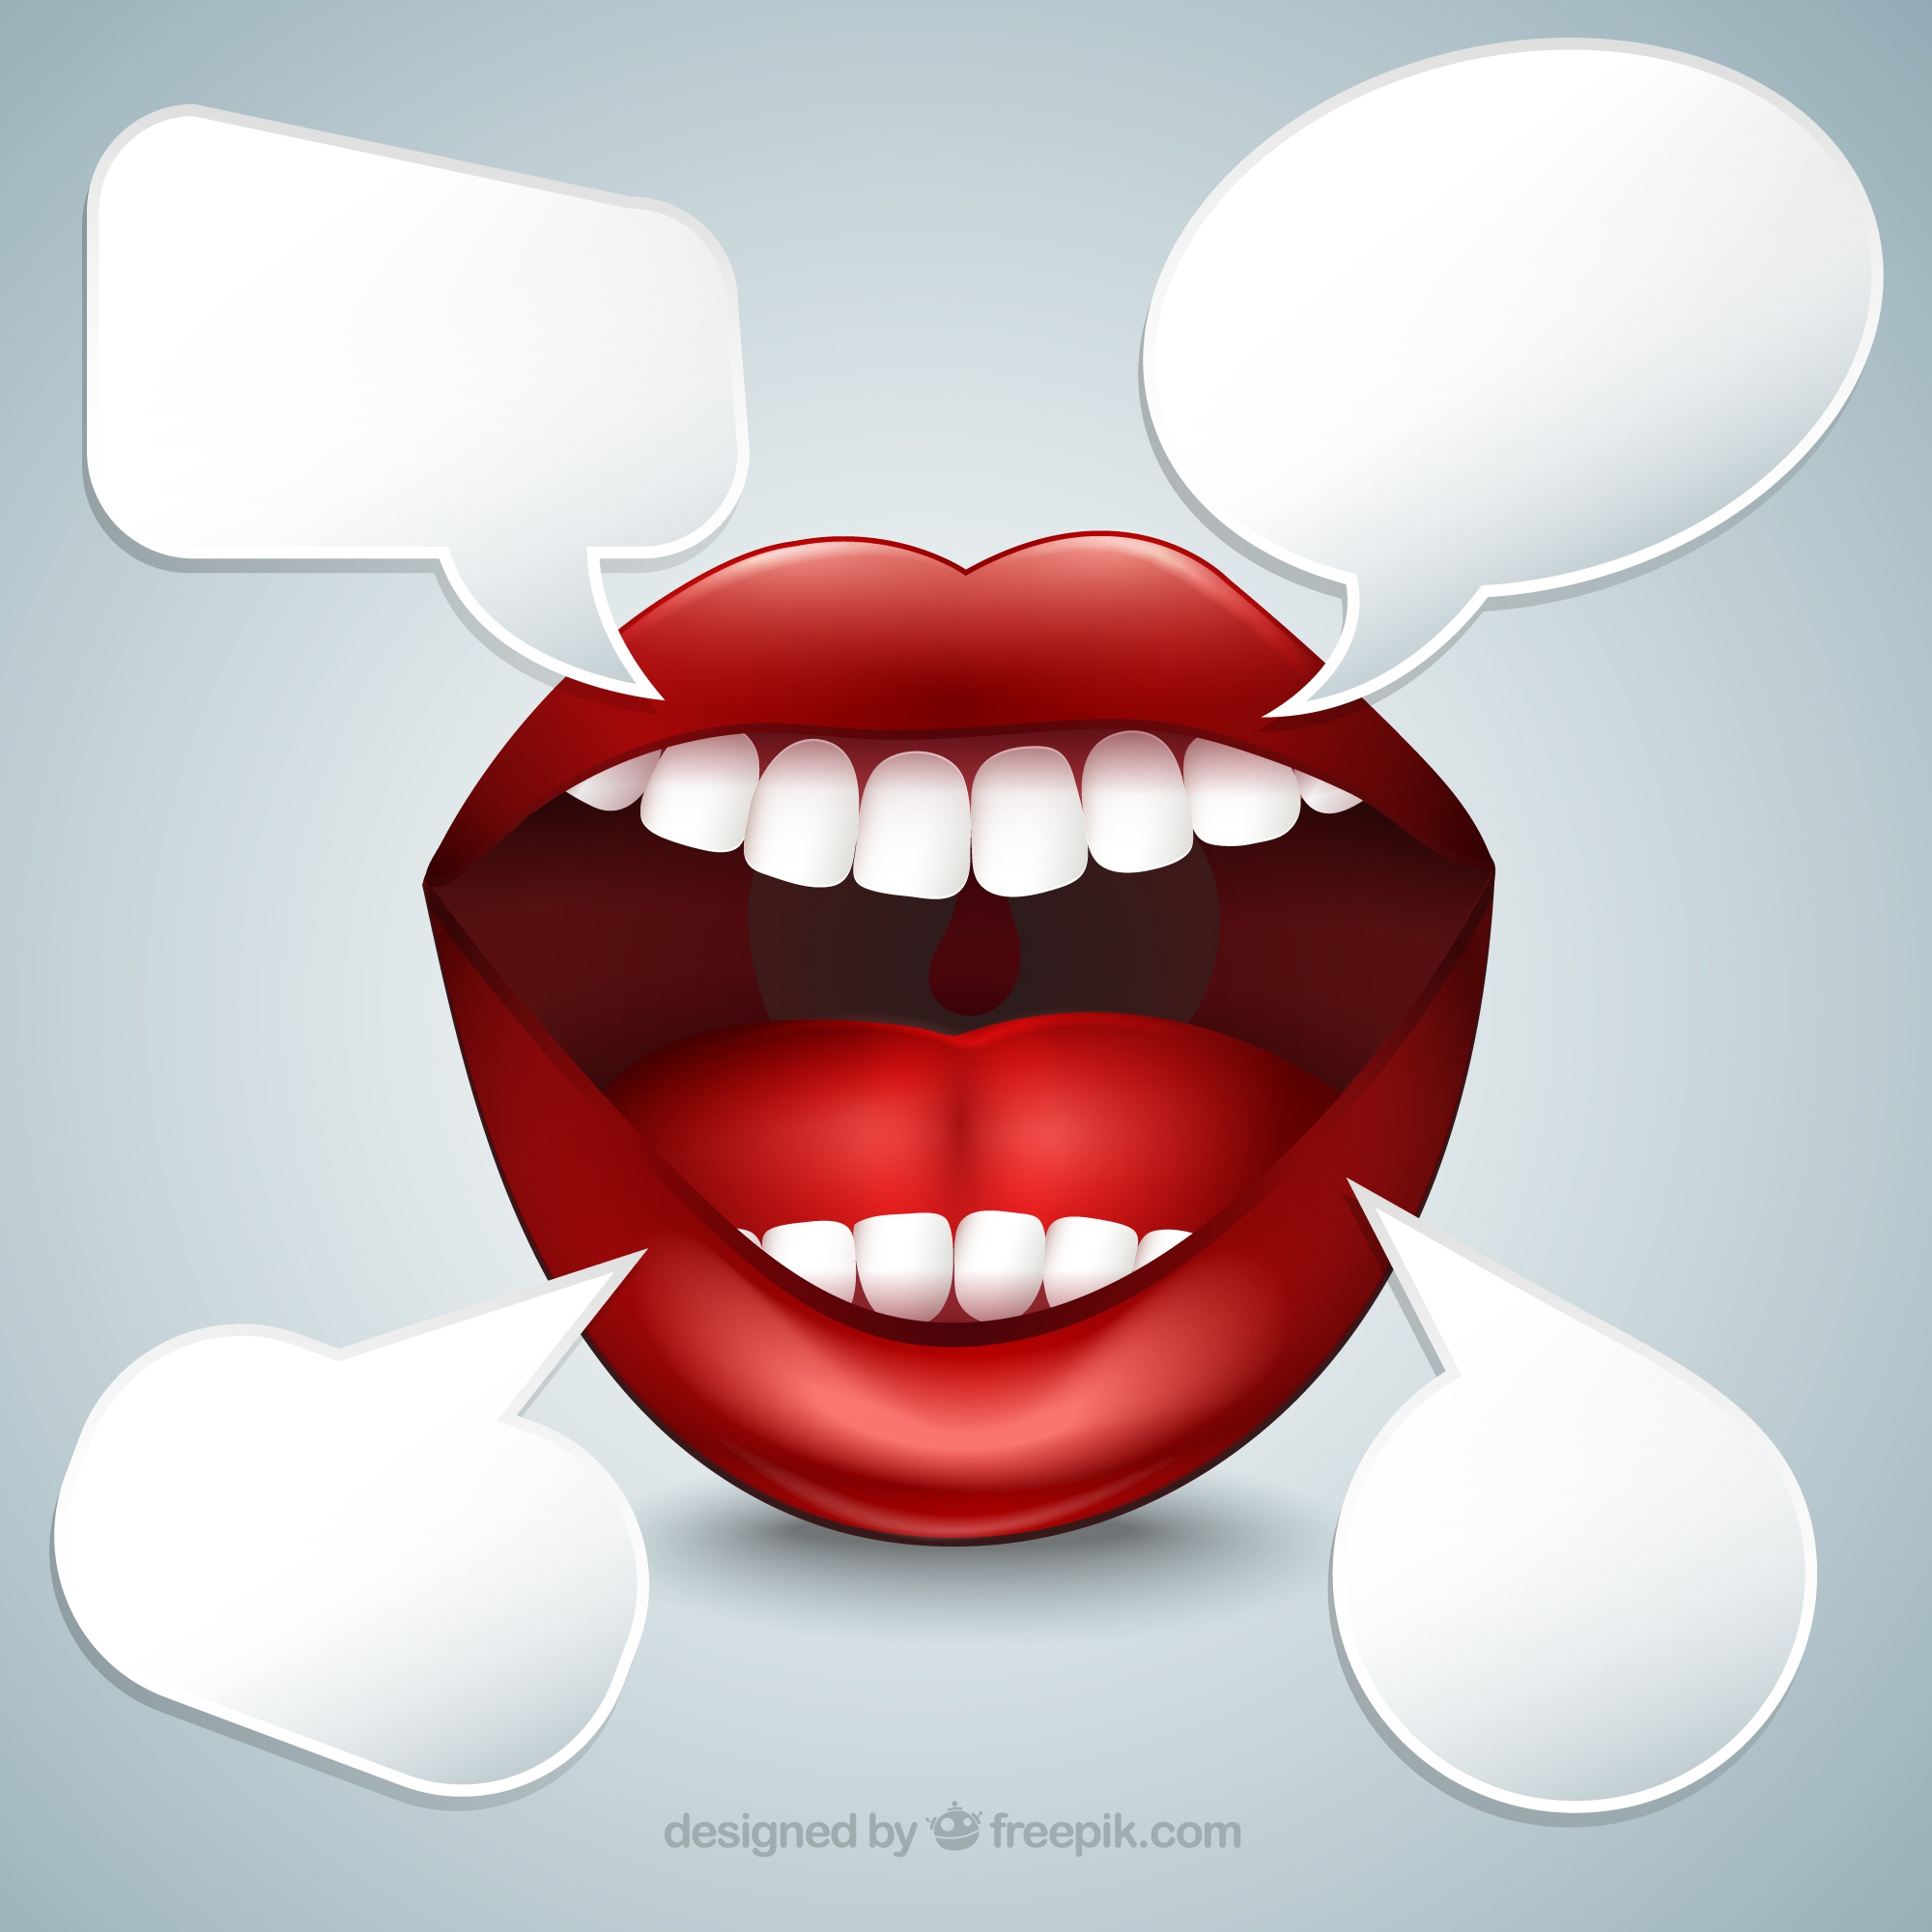 Mouth with speech bubbles